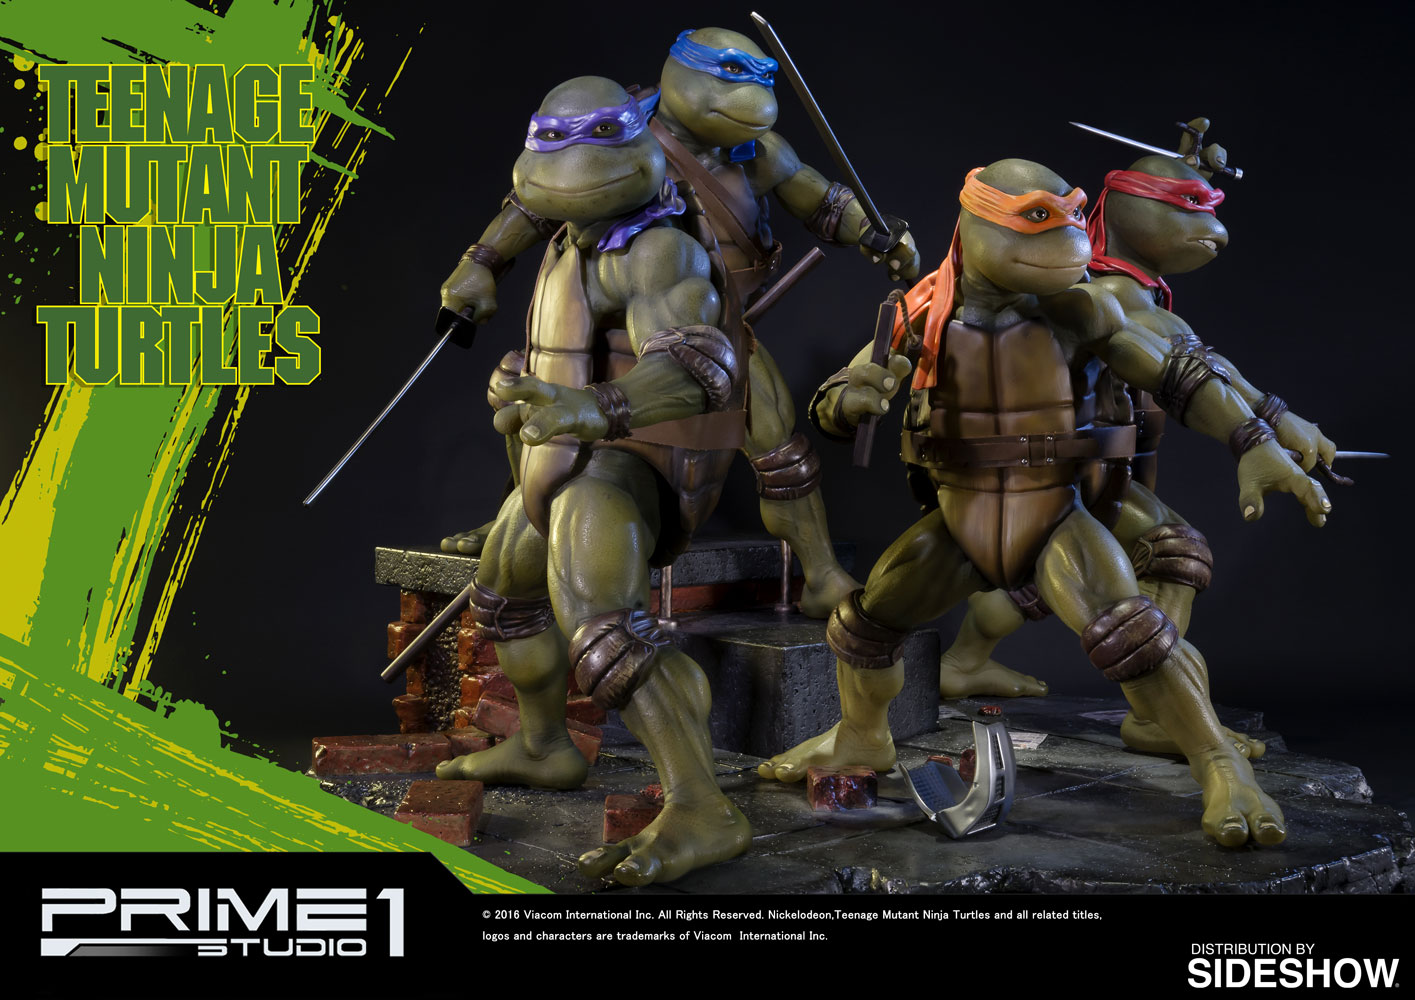 Teenage Mutant Ninja Turtles Toys 1 : Tmnt teenage mutant ninja turtles polystone statue by